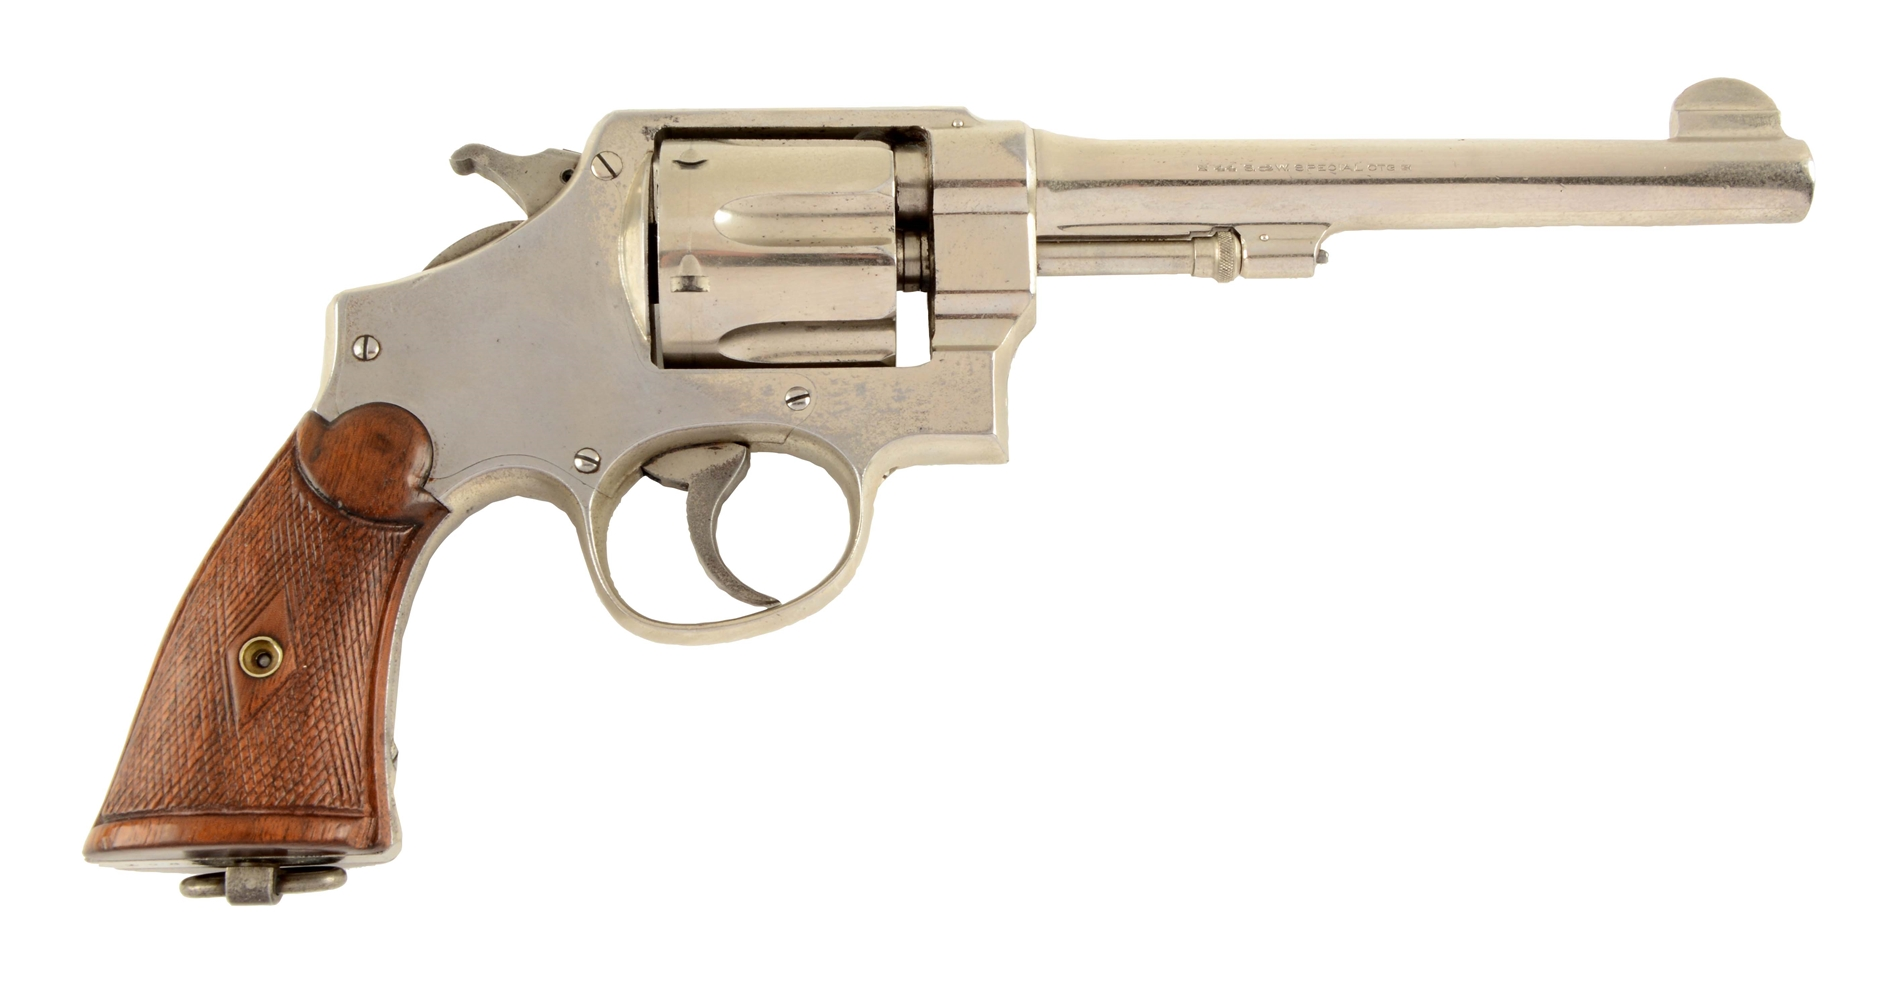 (C) S&W .44 2nd Model Hand Ejector Revolver.